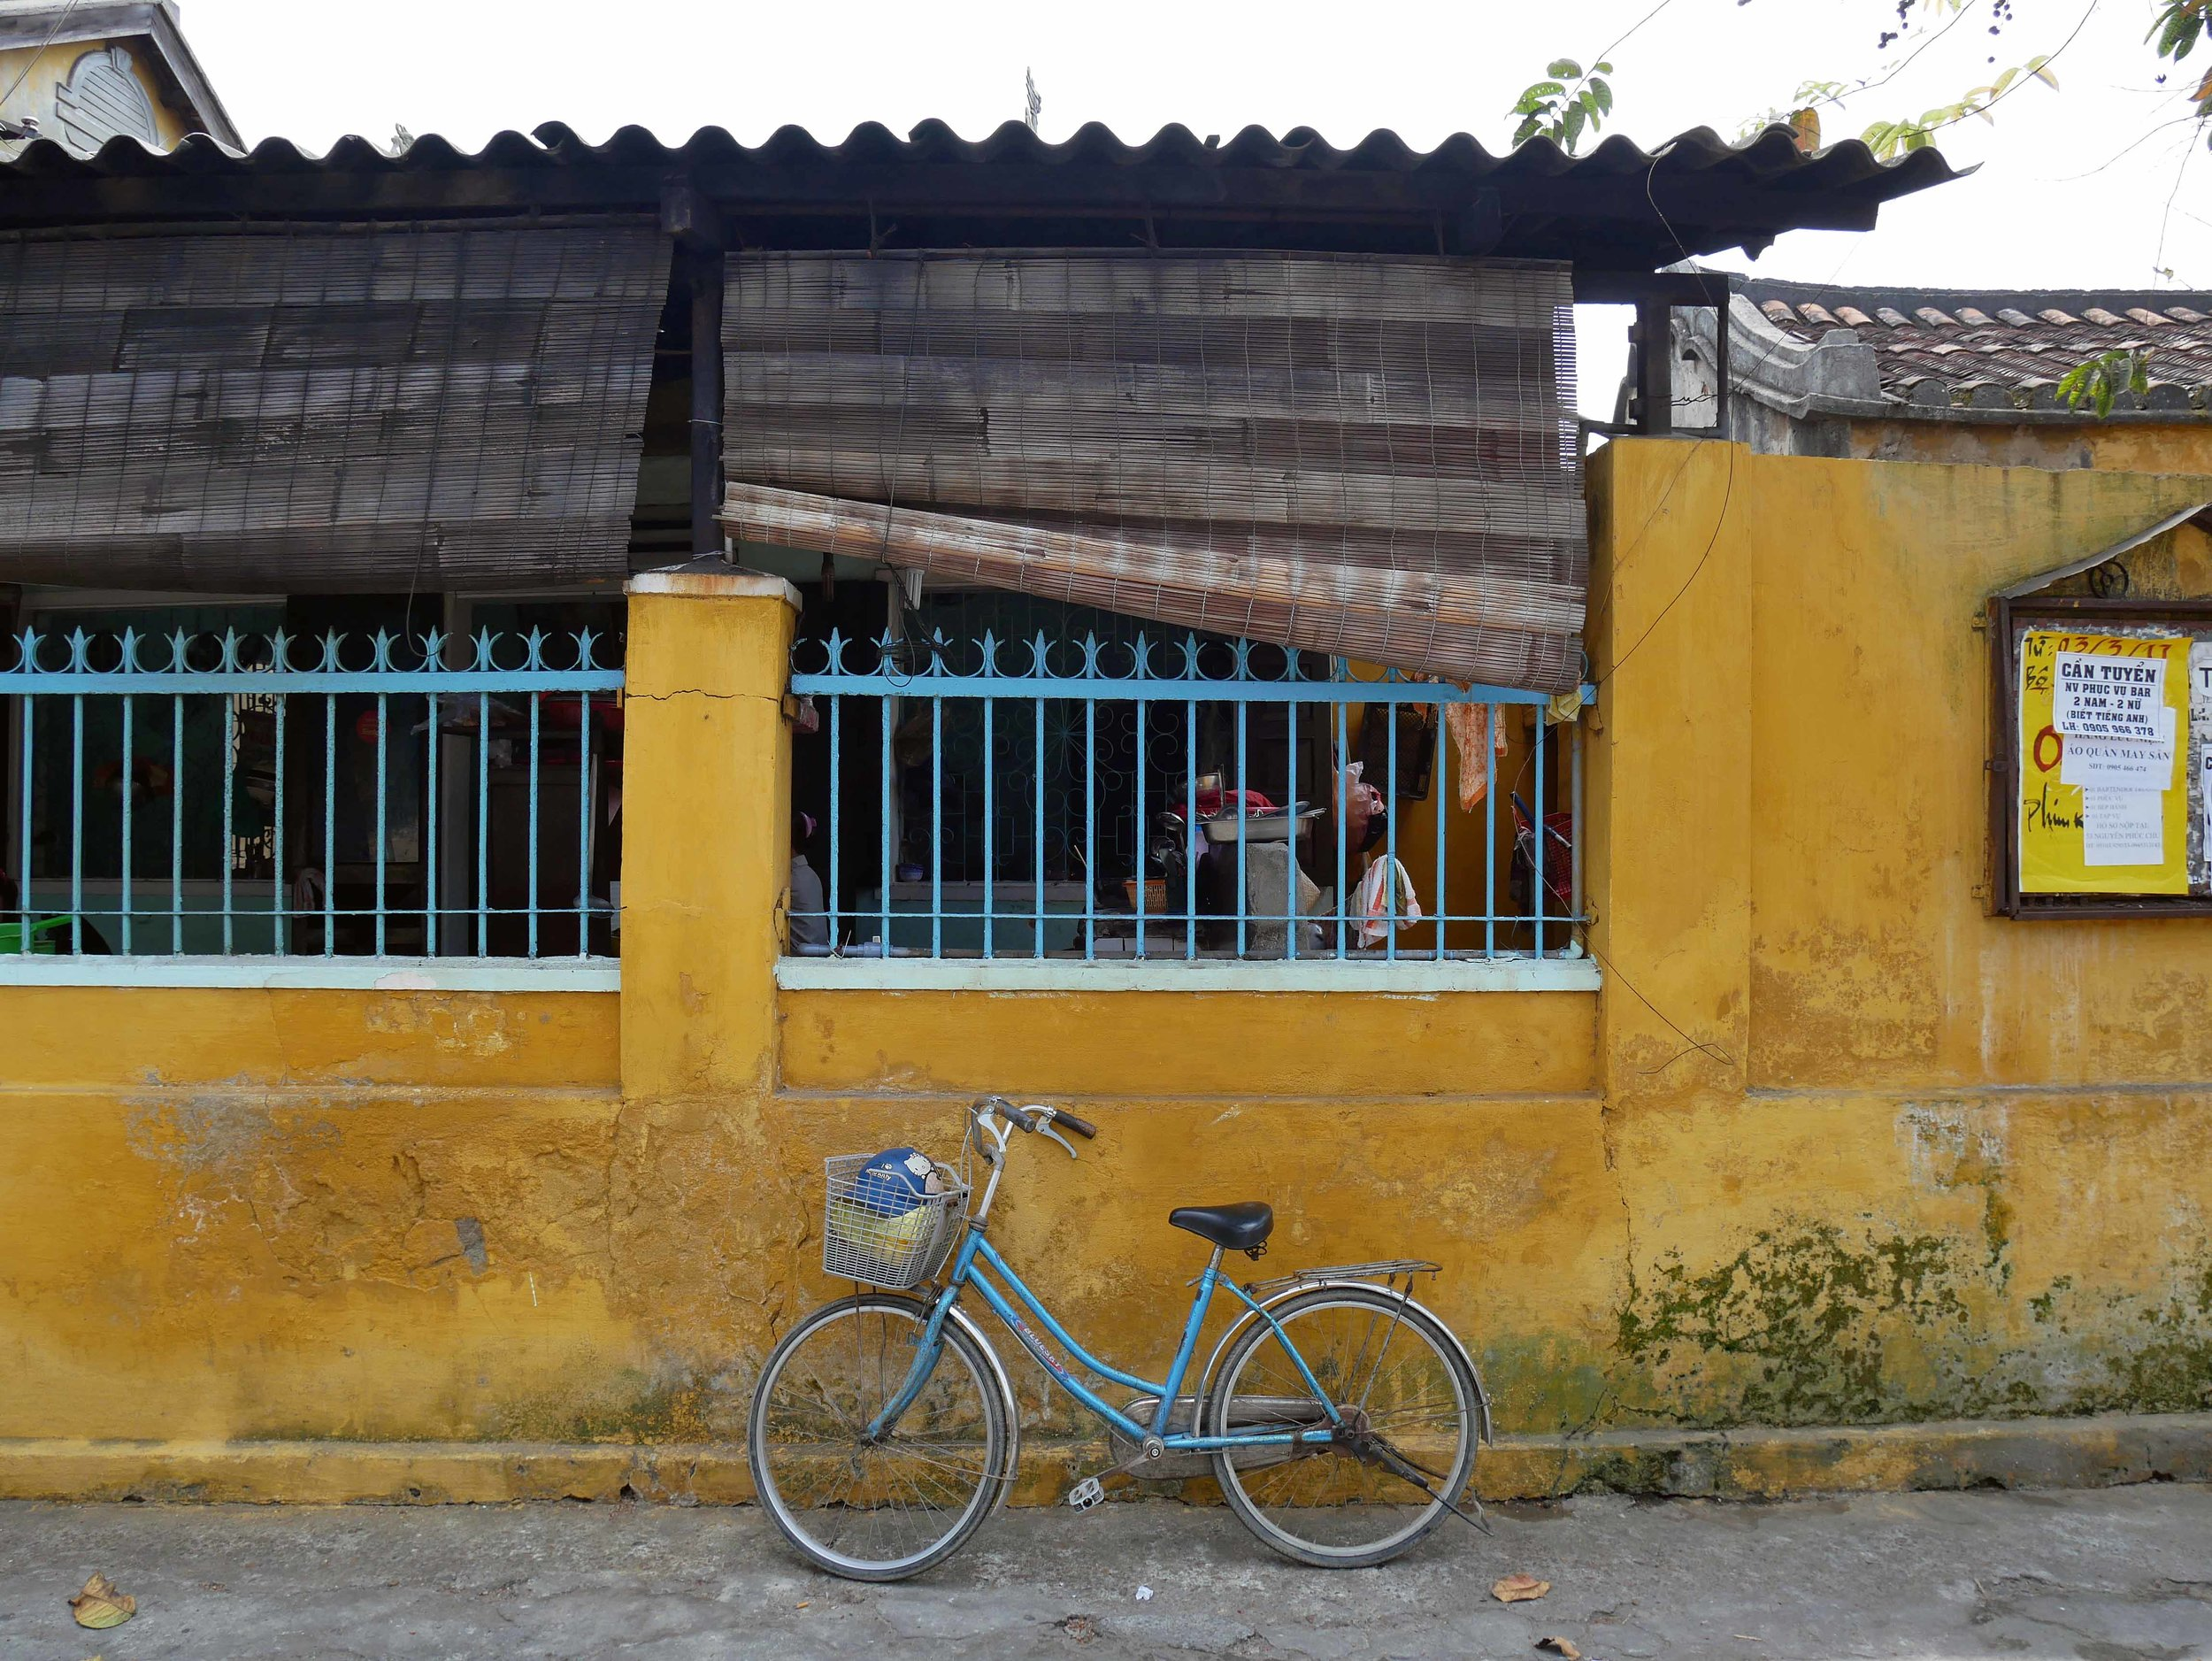 Hoi An Ancient Town is pedestrian and bicycle only, which gives some reprieve from the buzzing city motorbikes.